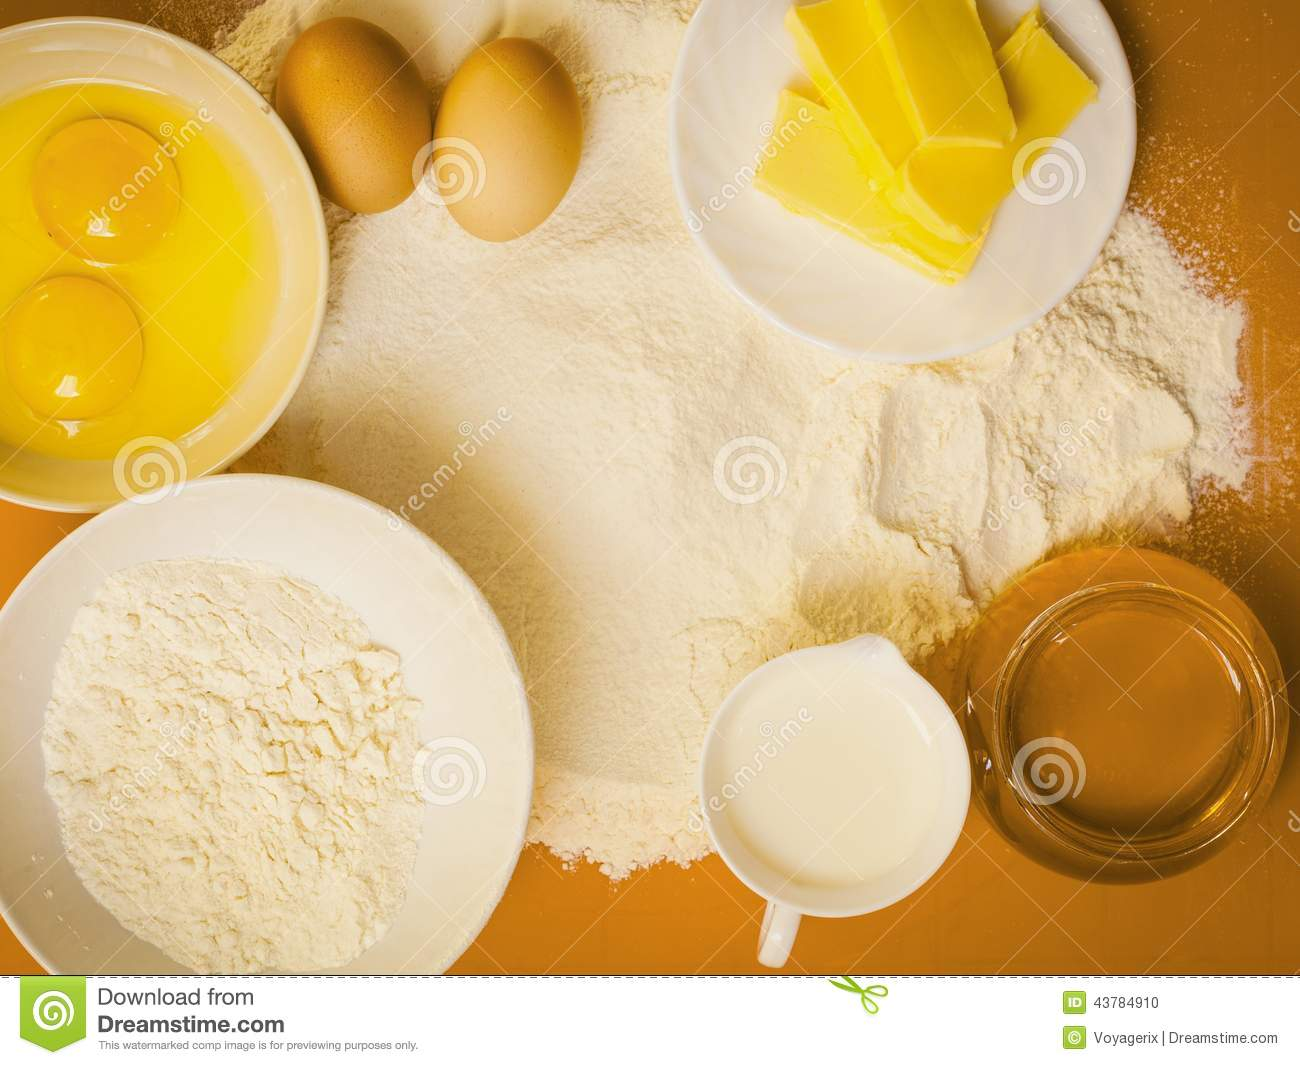 Preparation For Baking Bake Ingredients Stock Photo